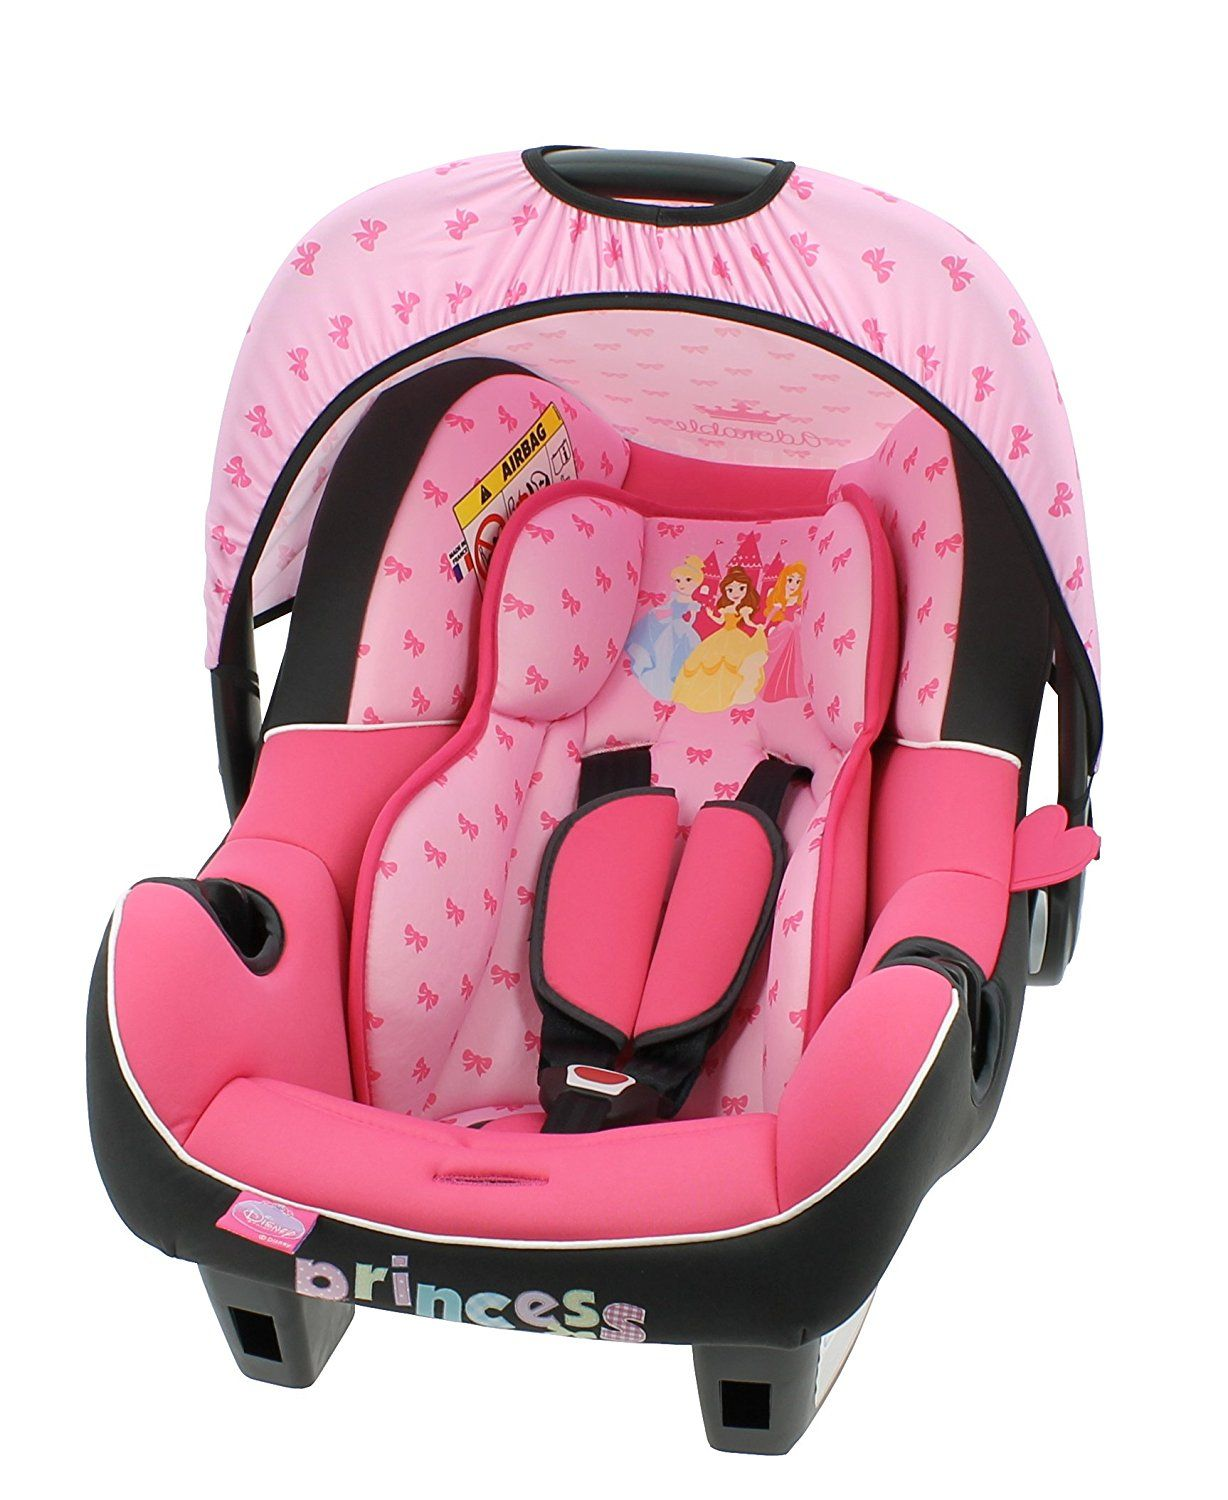 Disney Princess Beone SP Infant Carrier Car Seat: Amazon.co.uk: Baby